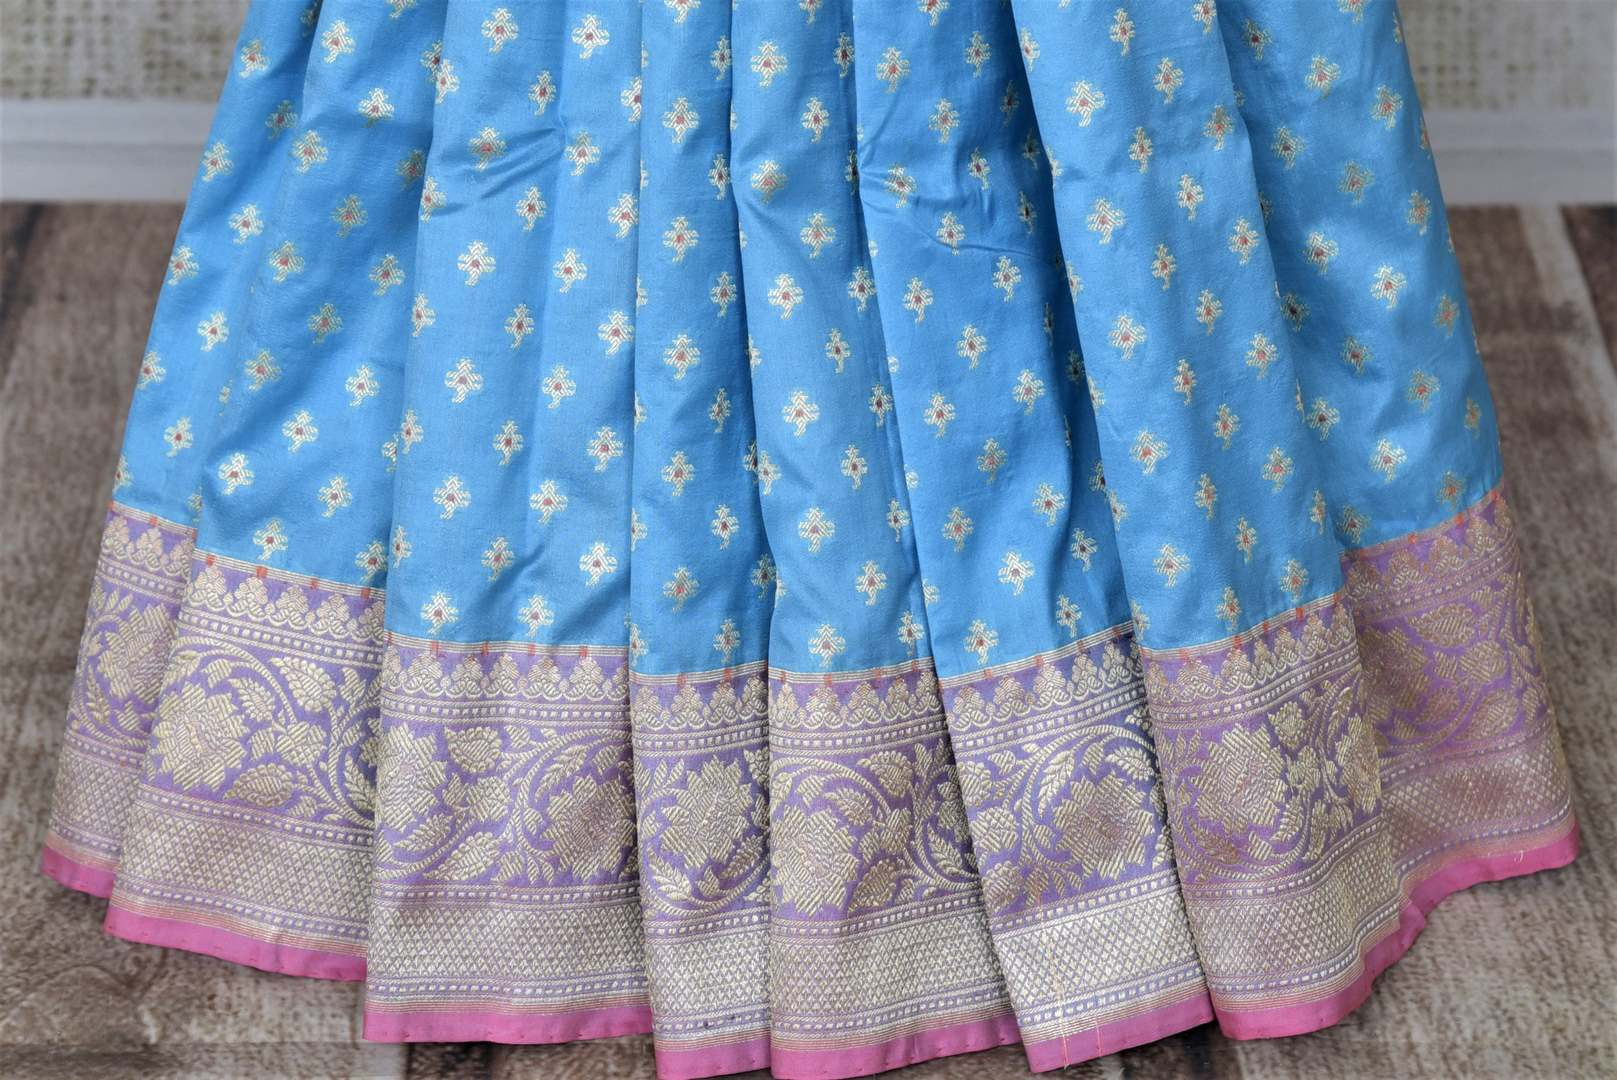 Shop stunning light blue Banarasi silk saree online in USA with silver zari buta and zari border. Keep it elegant with zari work sarees, Banarasi silk sarees, handwoven sarees from Pure Elegance Indian fashion boutique in USA. We bring a especially curated collection of ethnic sarees for Indian women in USA under one roof!-pleats